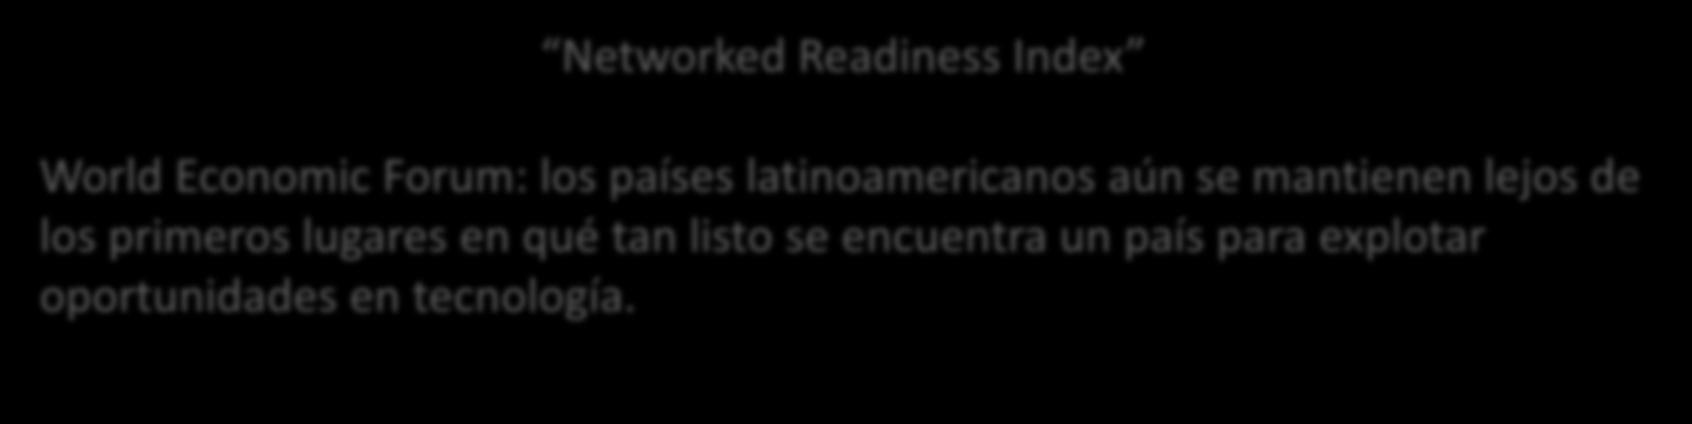 Retos y oportunidades Regulaciones e Infraestructura Networked Readiness Index World Economic Forum: los países latinoamericanos aún se mantienen lejos de los